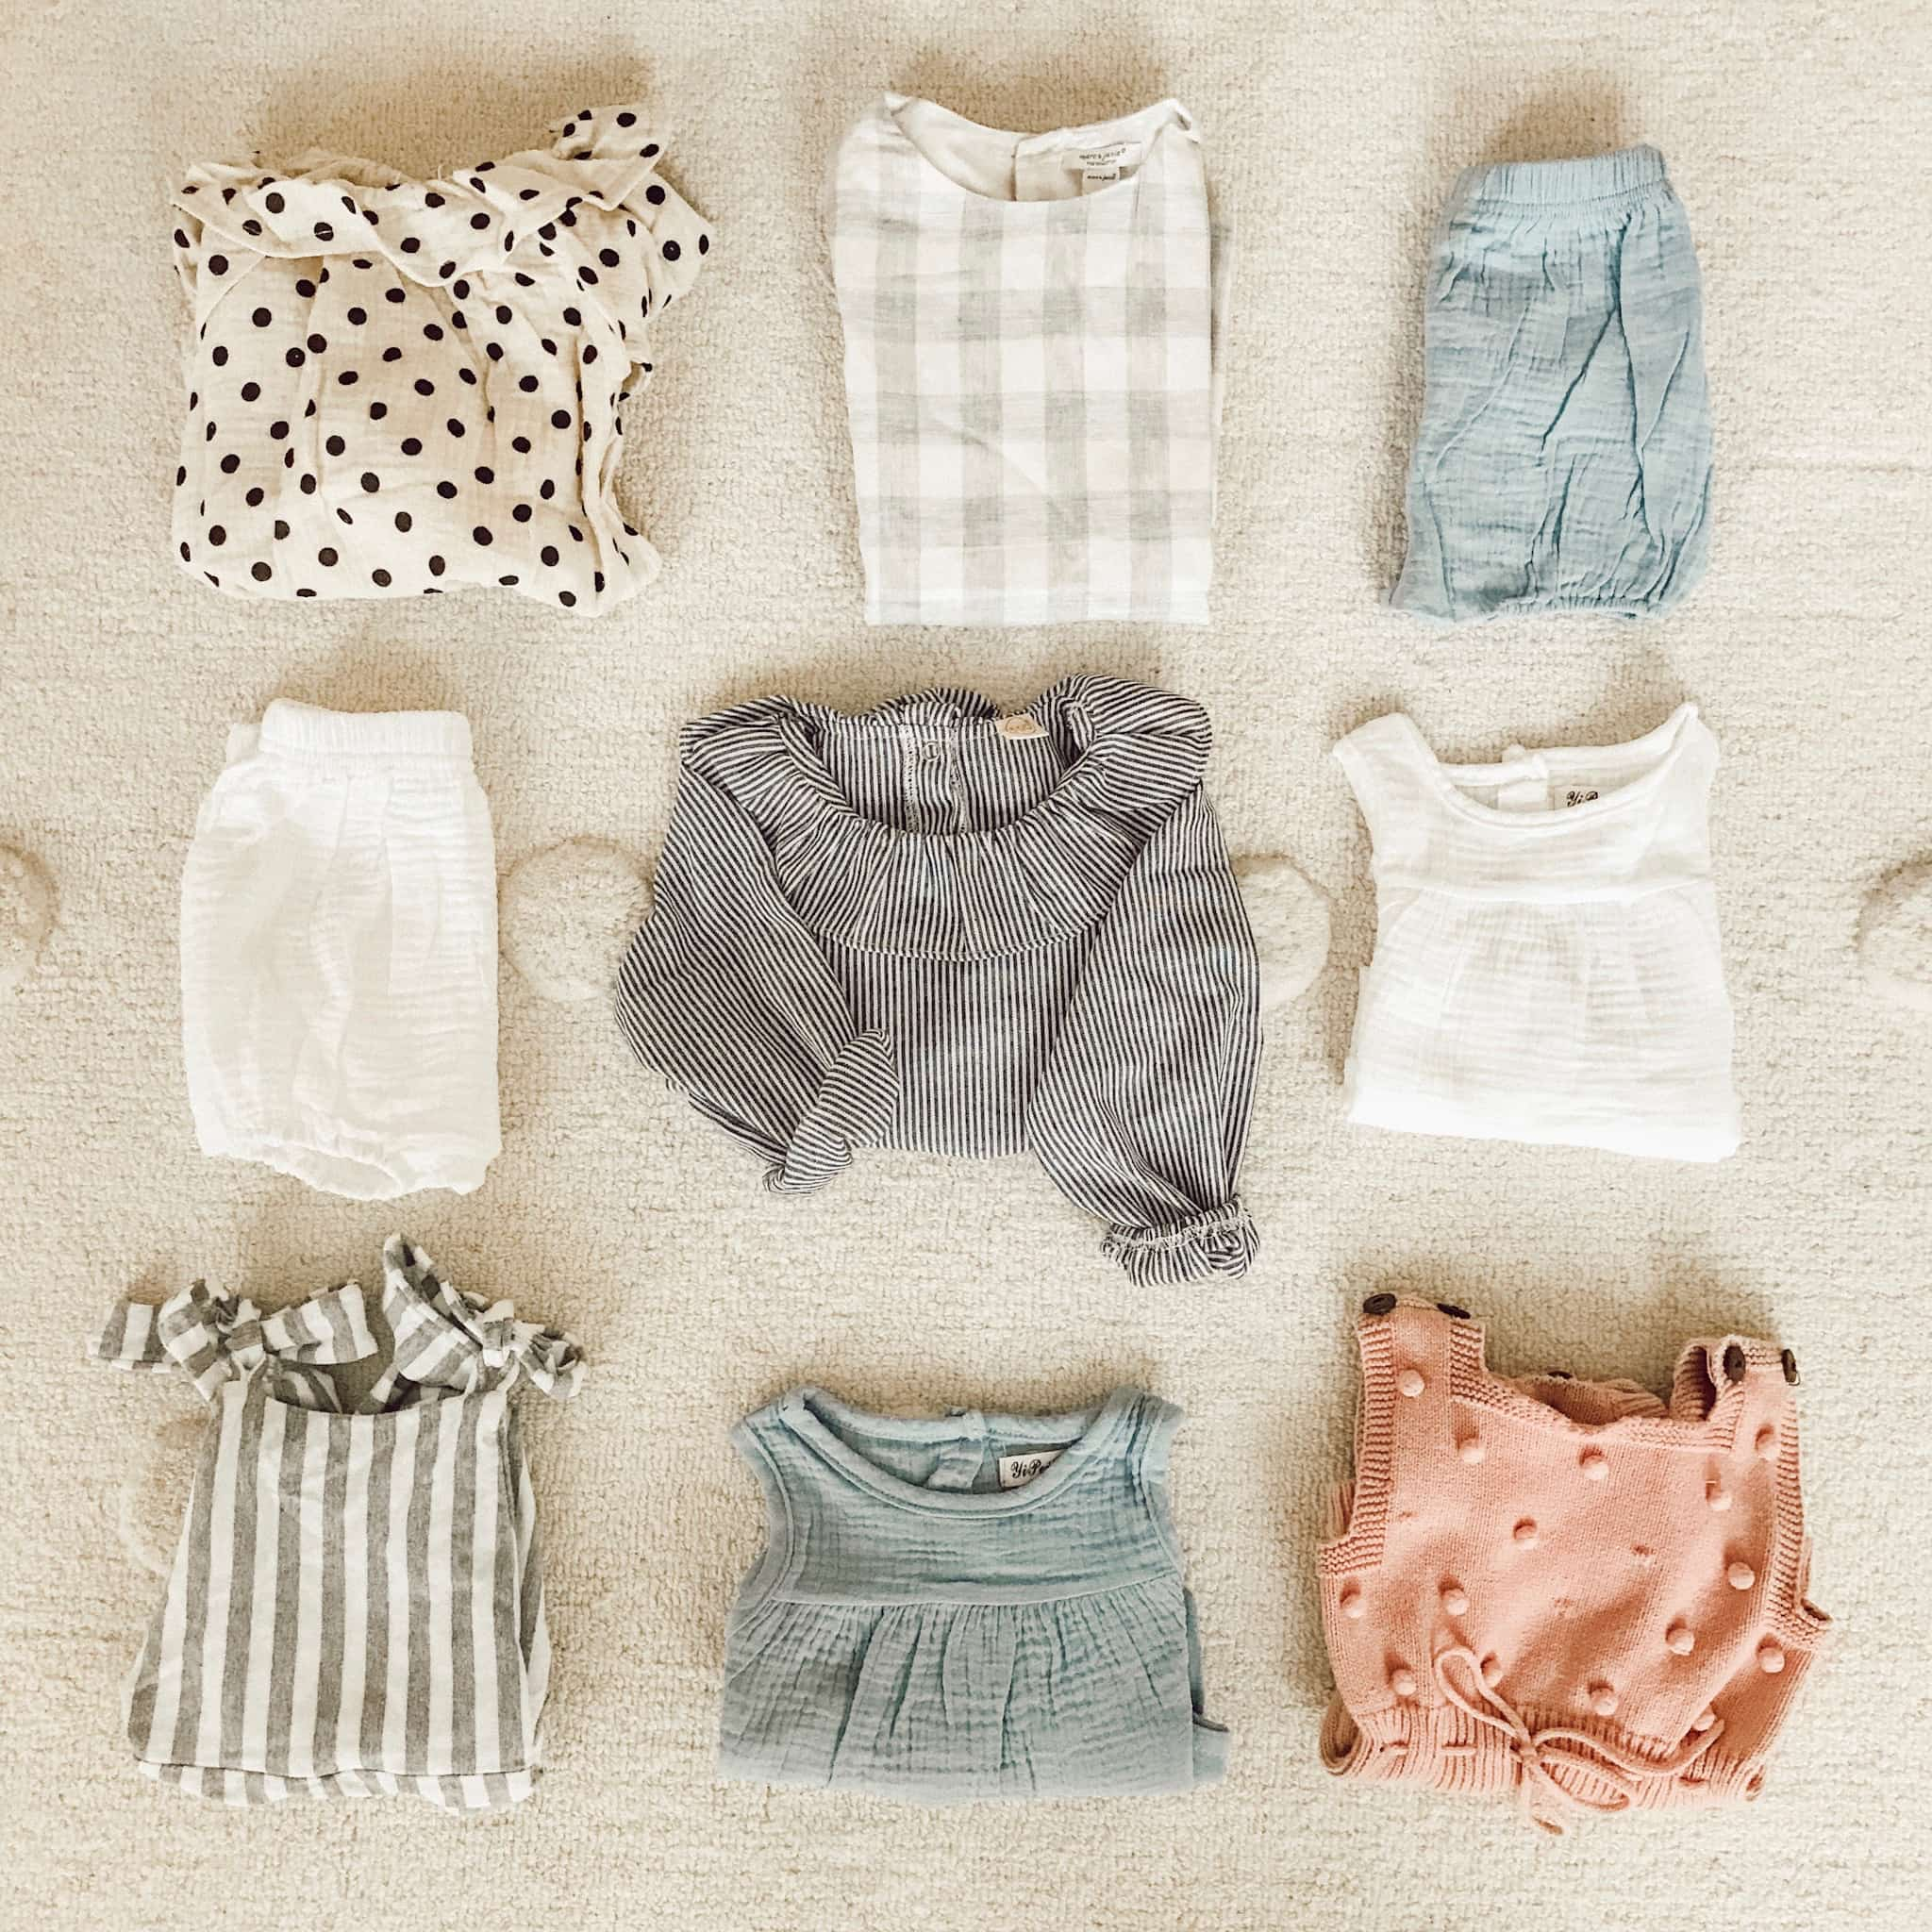 Best of Baby + Toddler Clothing for Spring from Amazon Fashion | Momma Society